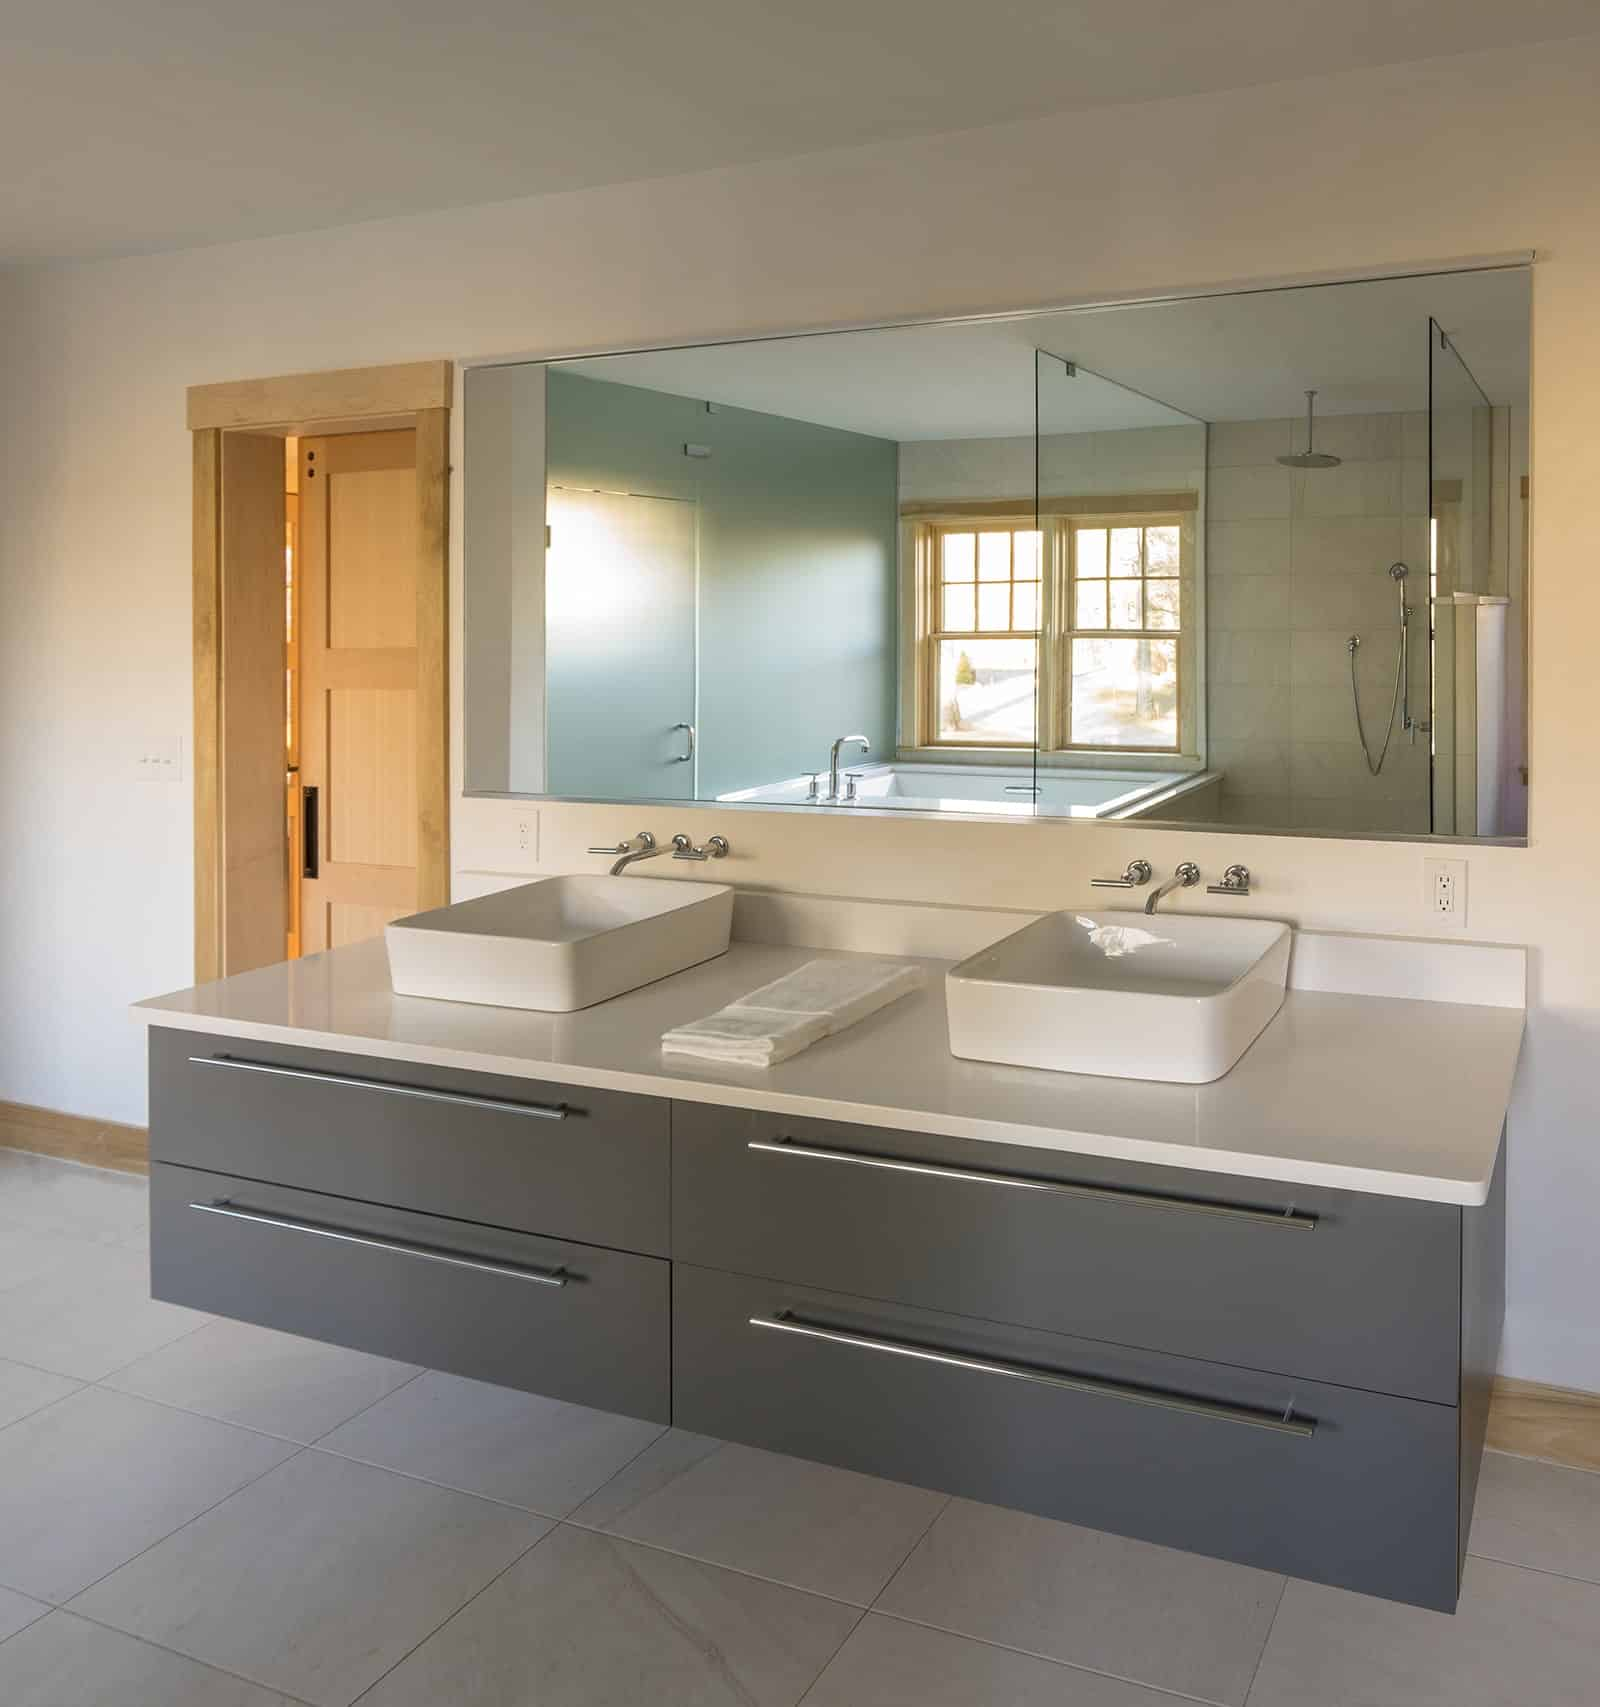 Contemporary Retreat Interiors Ipswich MA Bathroom